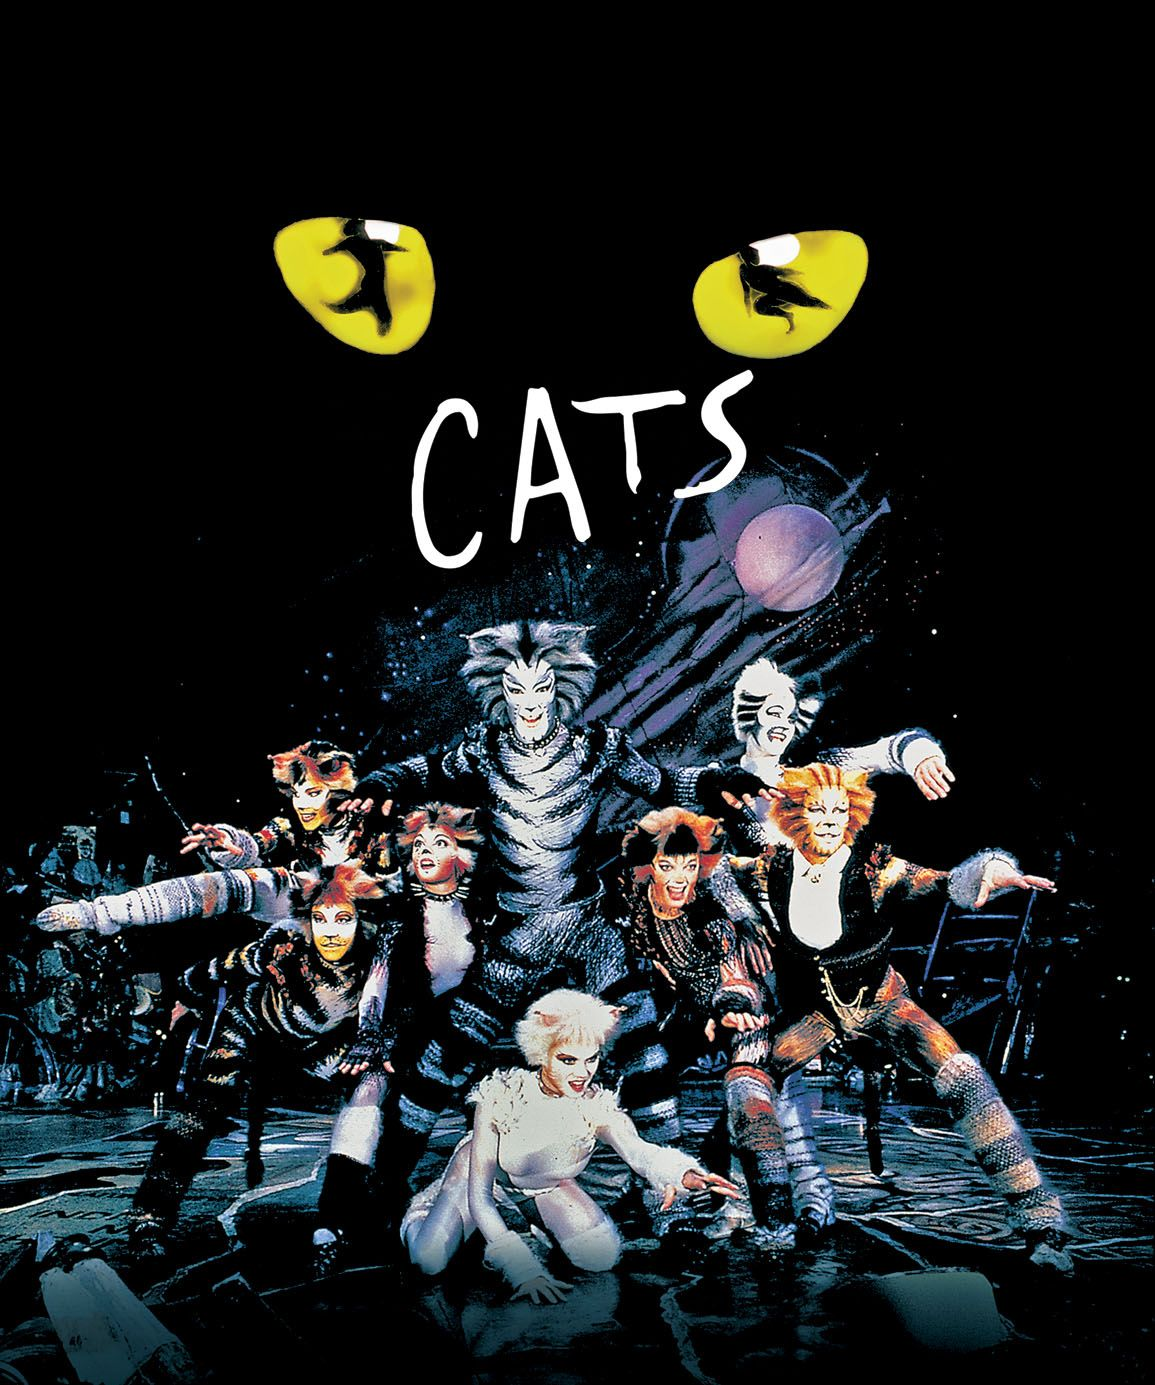 Pin by Joe Jing on 80s Fashion Cats, Musicals, Cats musical